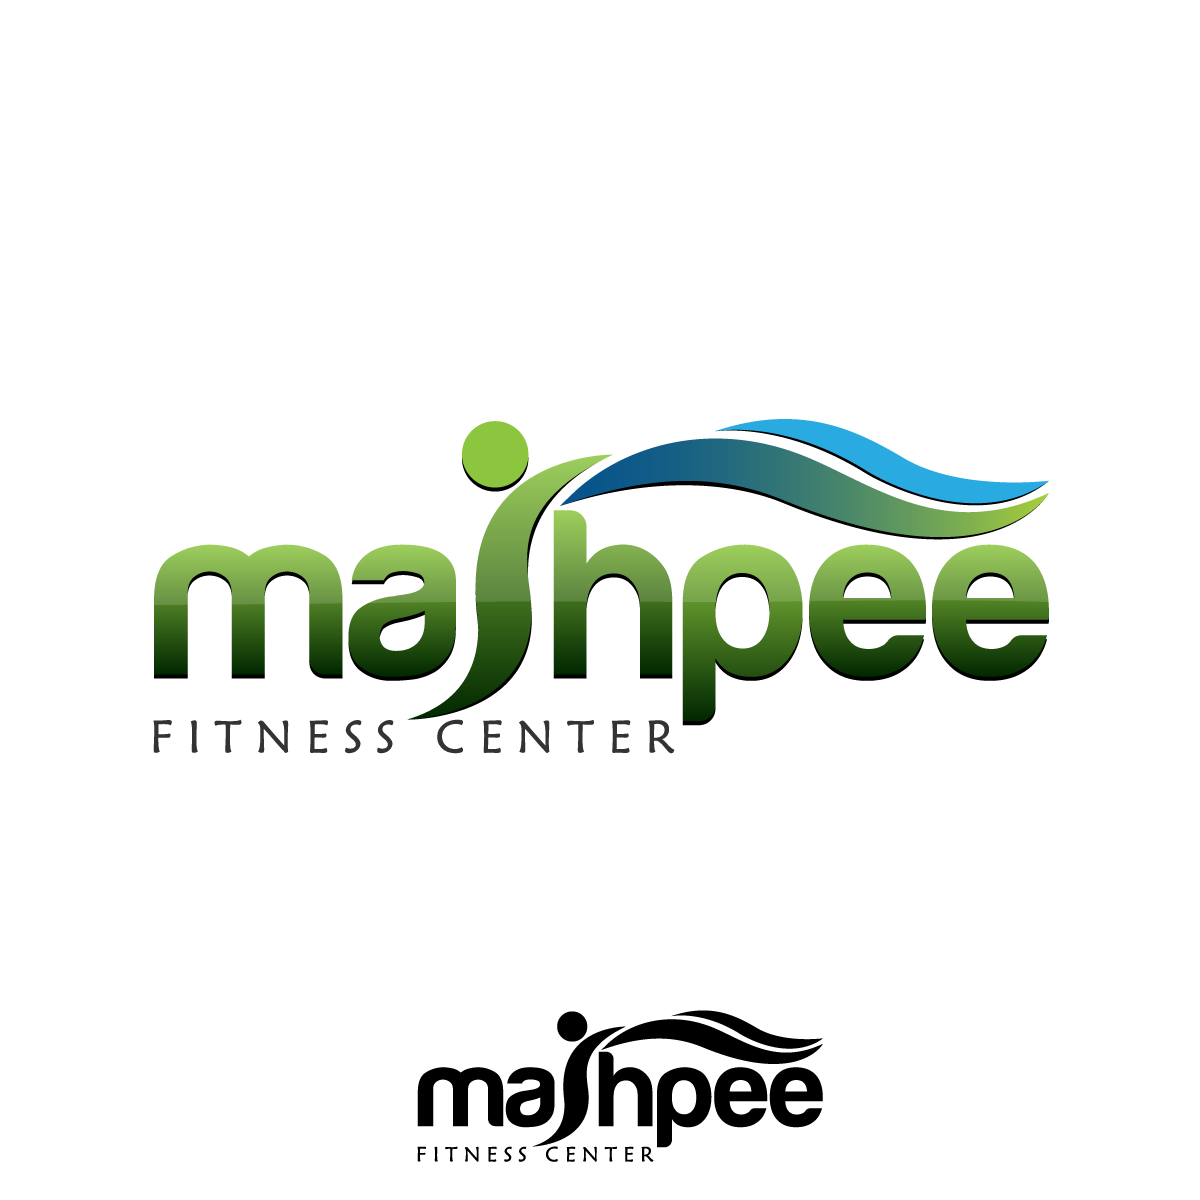 Logo Design by rockin - Entry No. 7 in the Logo Design Contest New Logo Design for Mashpee Fitness Center.